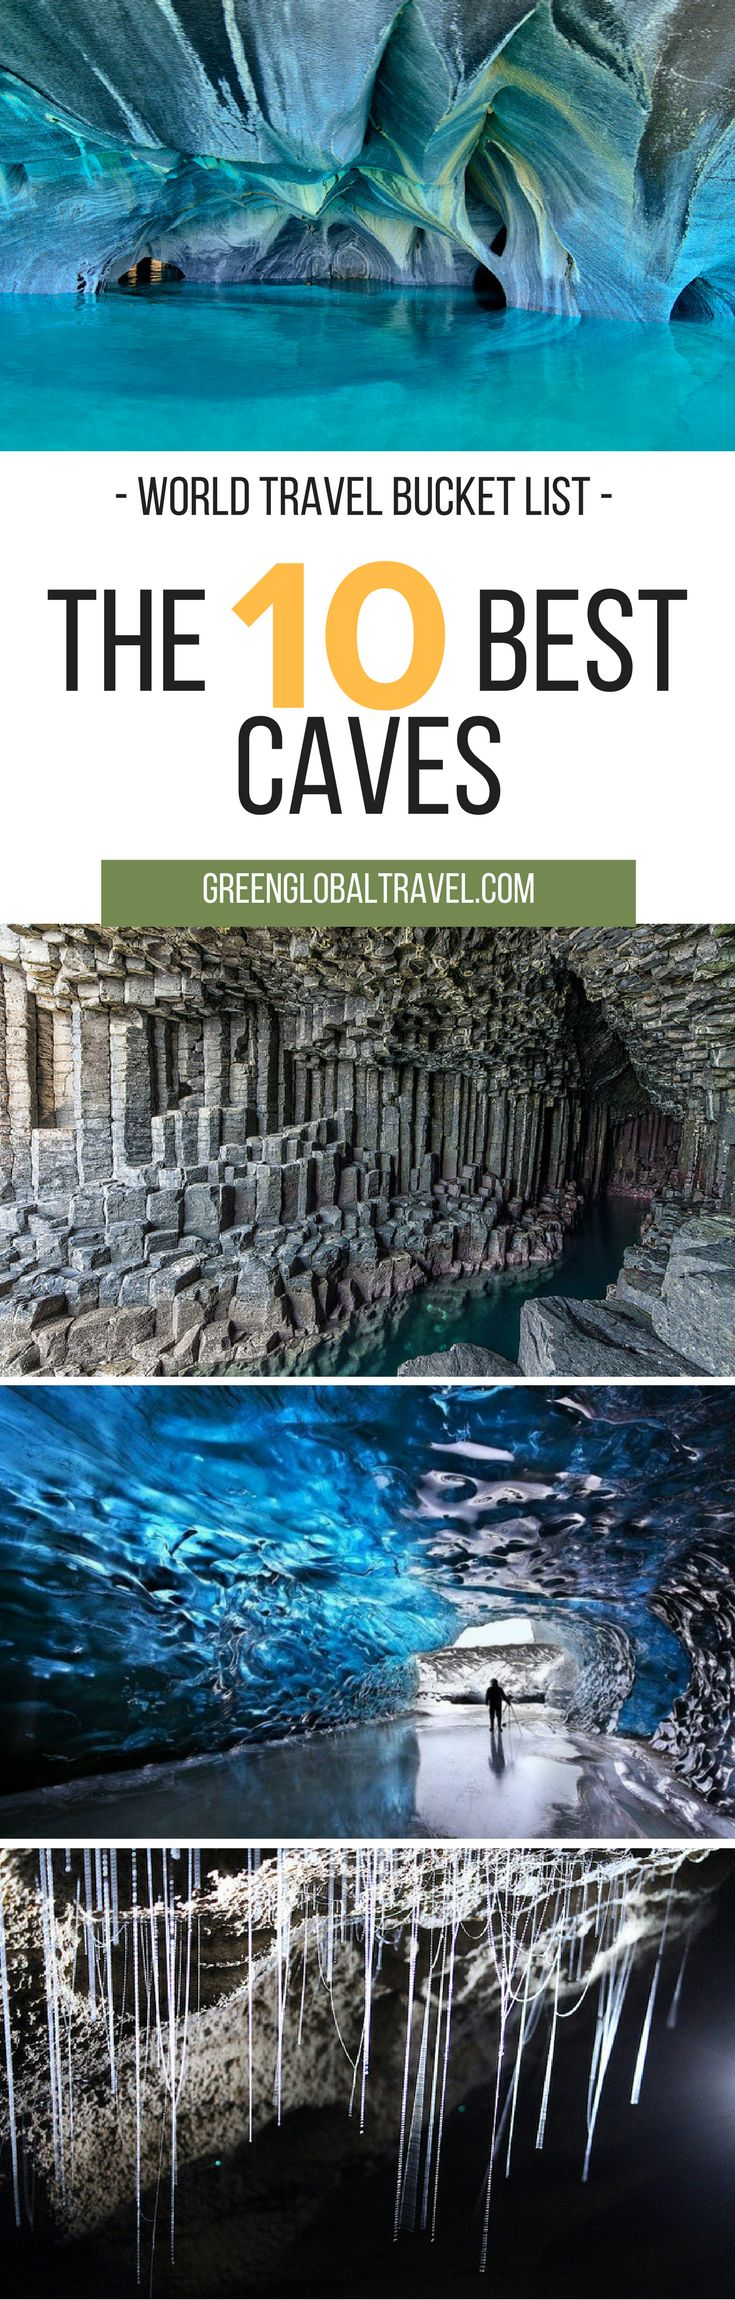 Read about our top ten caves for your world travel bucket list   Belize   New Zealand   China   Actun Tunichil   Waitomo Glowworm   Thousand Buddhas   Iceland   Skaftafell   Chile   Patagonia Marble   Vietnam   Mountain River   Scotland   Fingal's Cave  